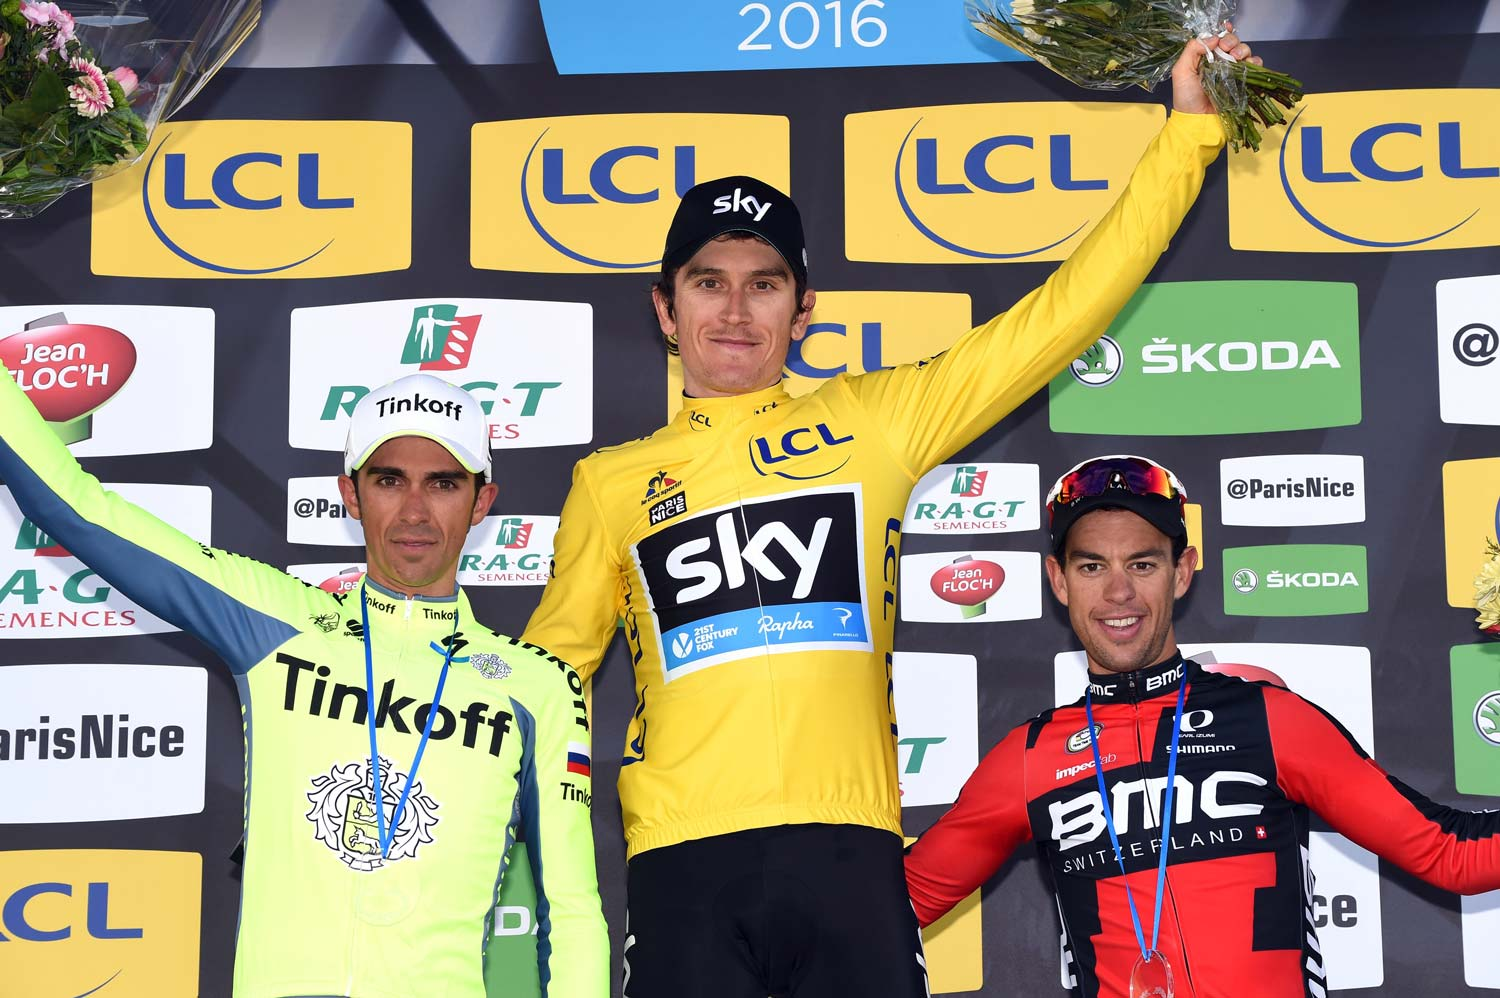 The final podium of the 2016 Paris-Nice: Alberto Contador (2nd), Geraint Thomas (1st) and Richie Porte (3rd). Photo: Graham Watson